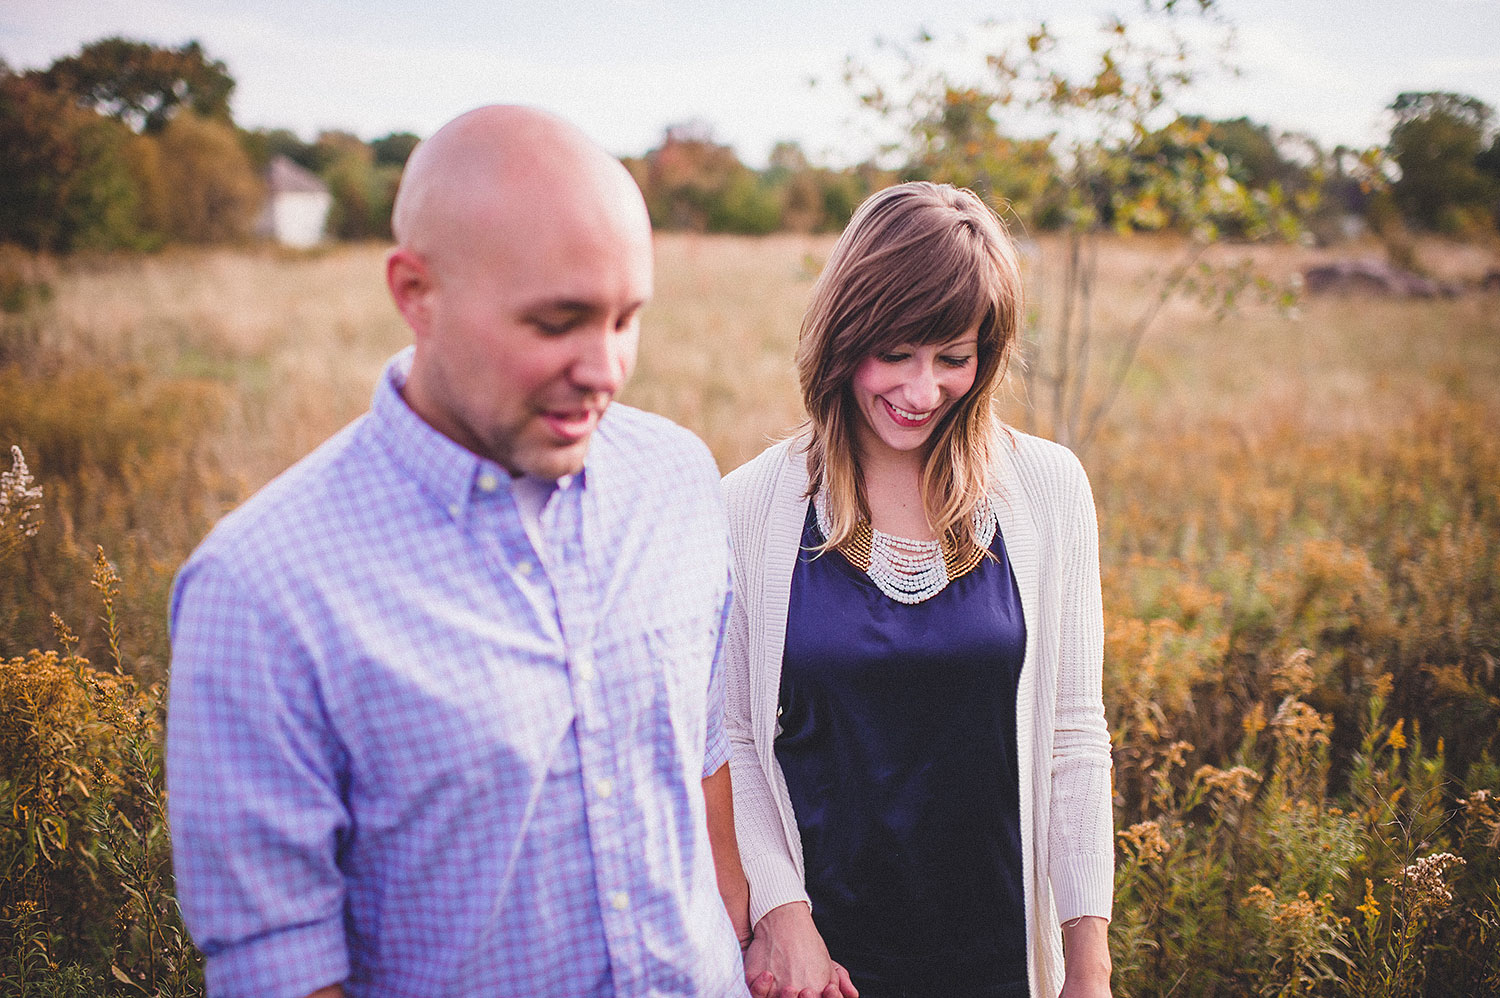 pat-robinson-photography-wilmington-engagement-session-6-2.jpg